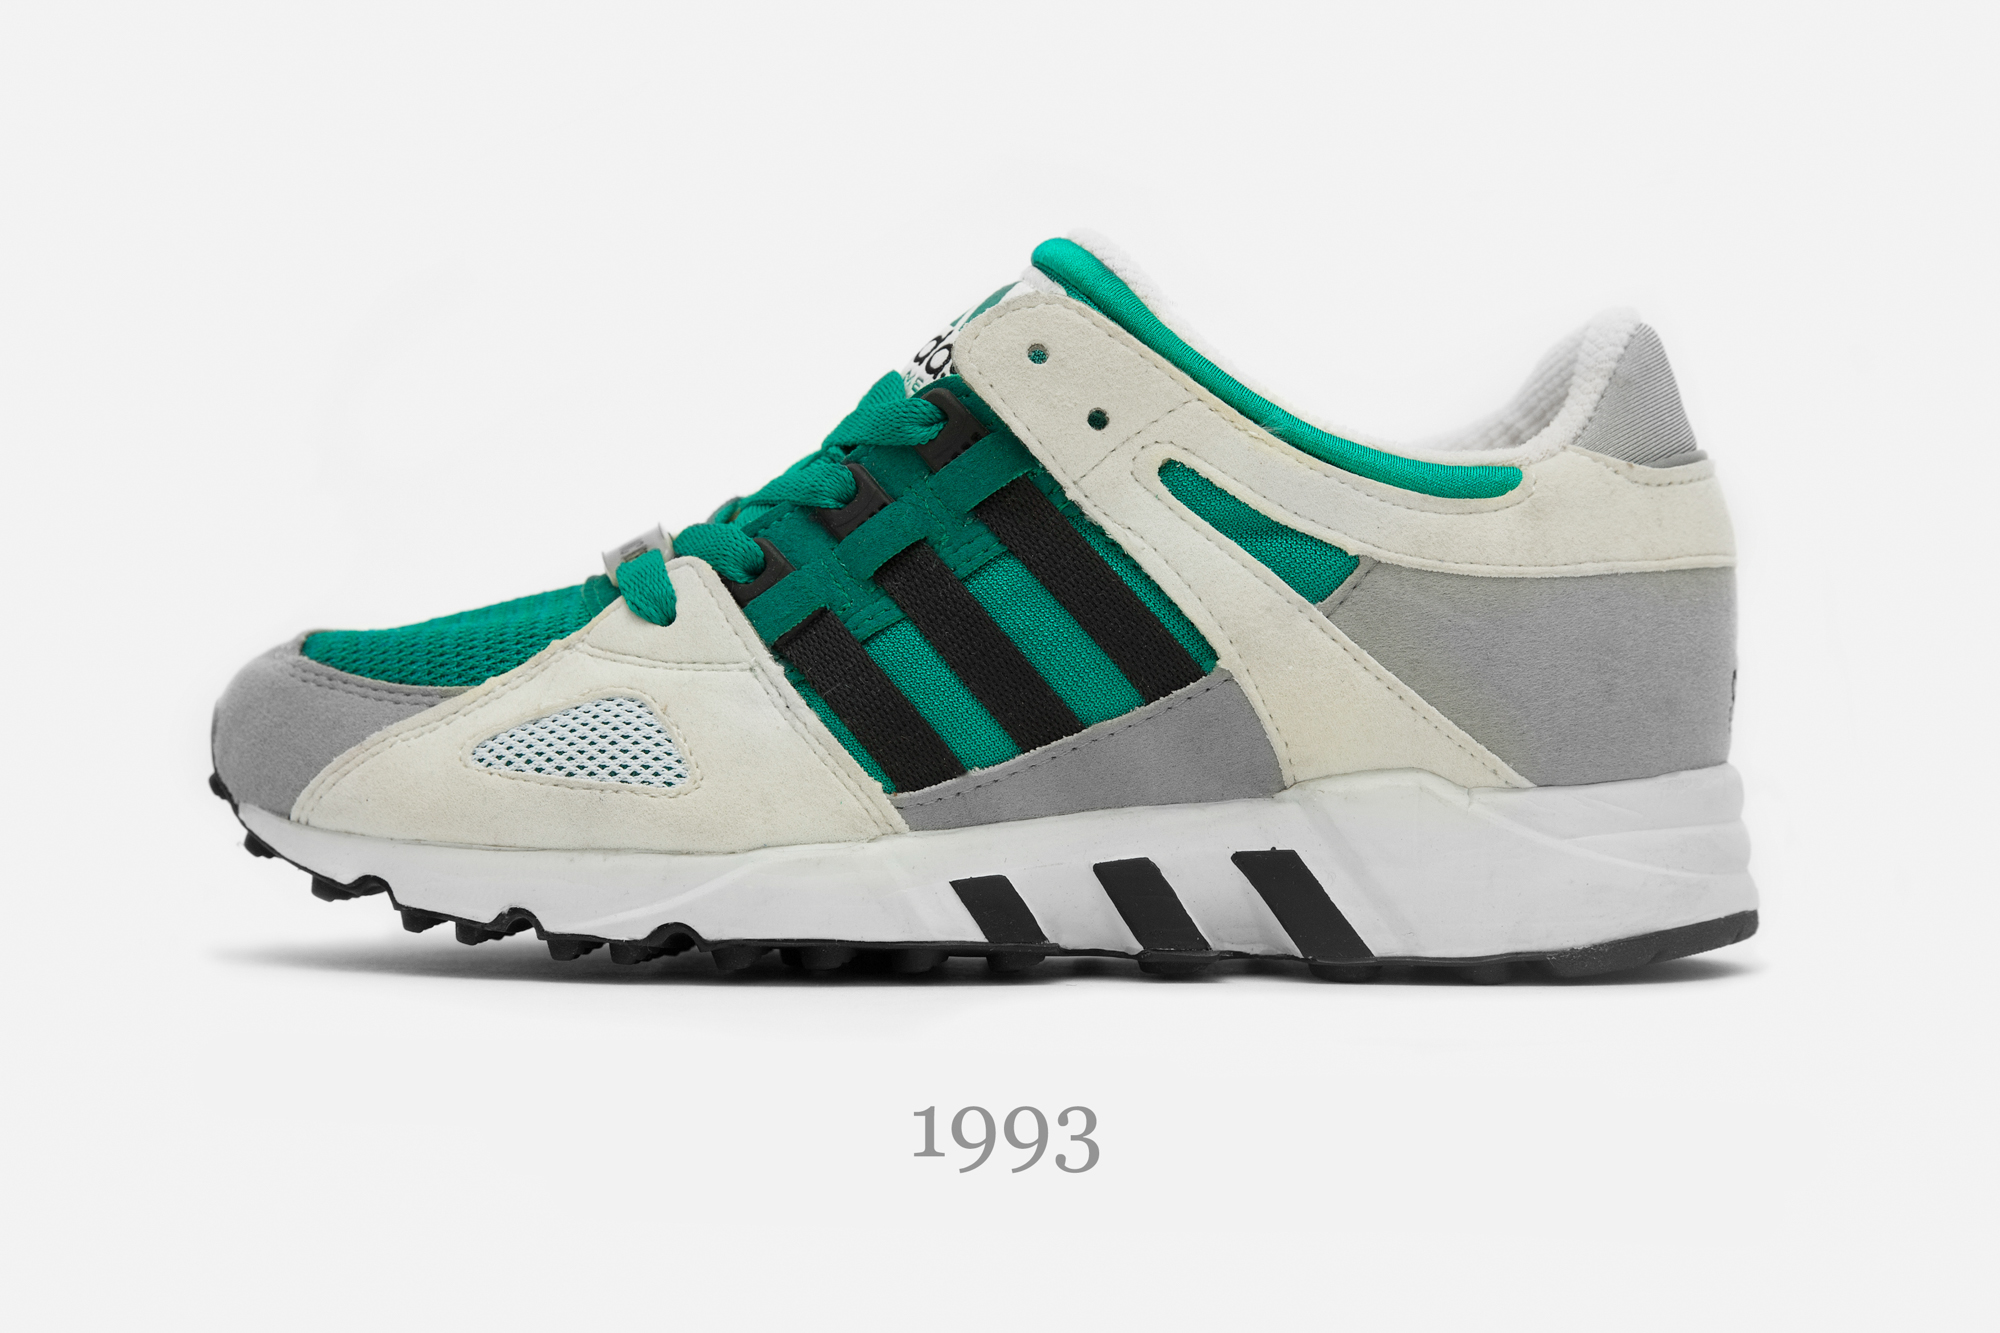 adidas_EQT_Equipment_Lock_up_size_hq_exclusive-4